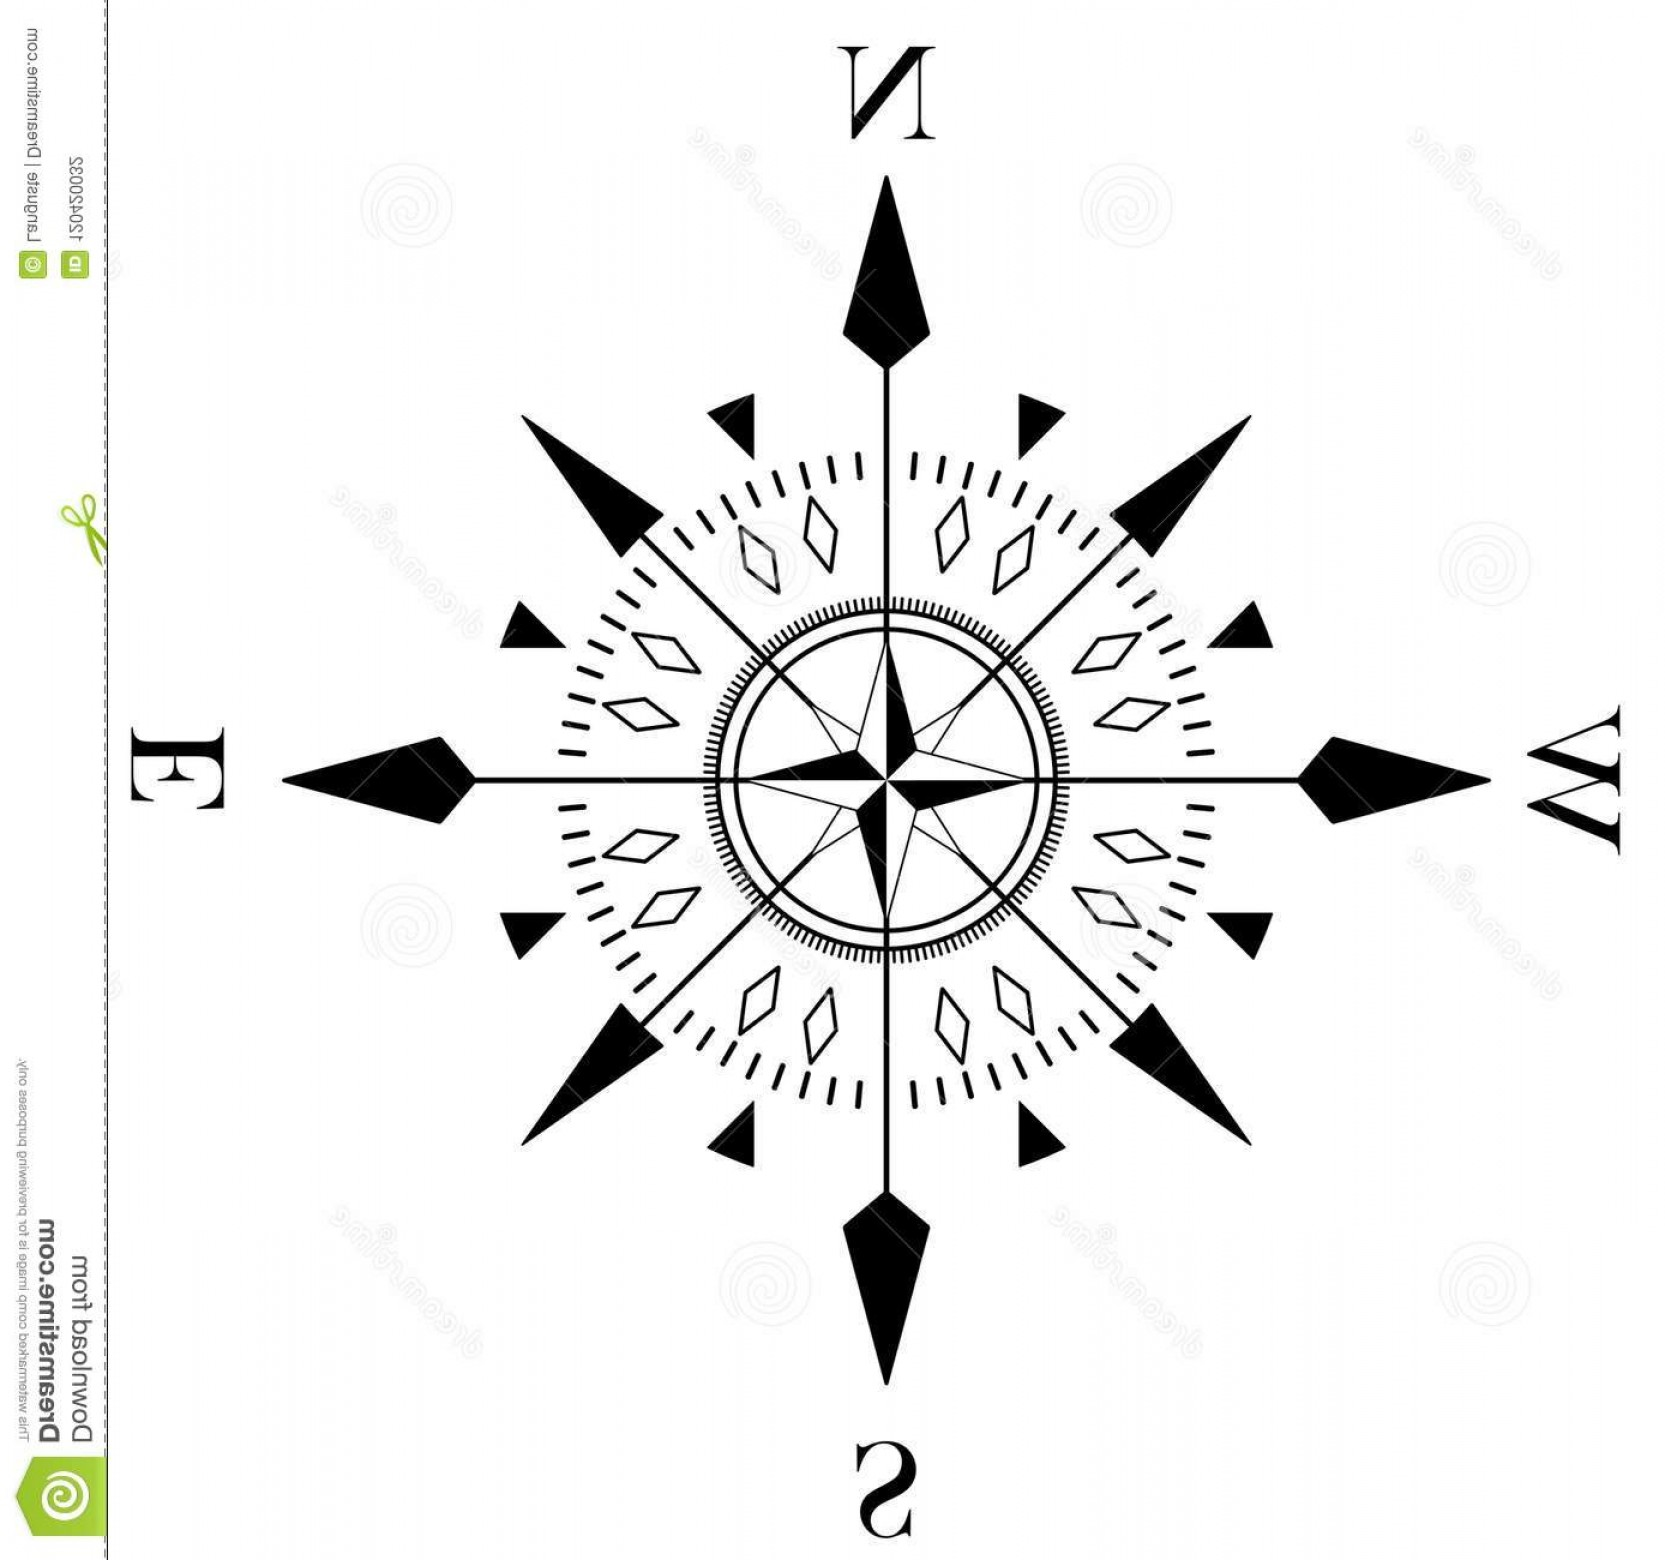 Mandala Vector Simple Compass: Usable As Marine Nautical Navigation Symbol All Related Wind Directions Compass Rose Vector Isolated White Image